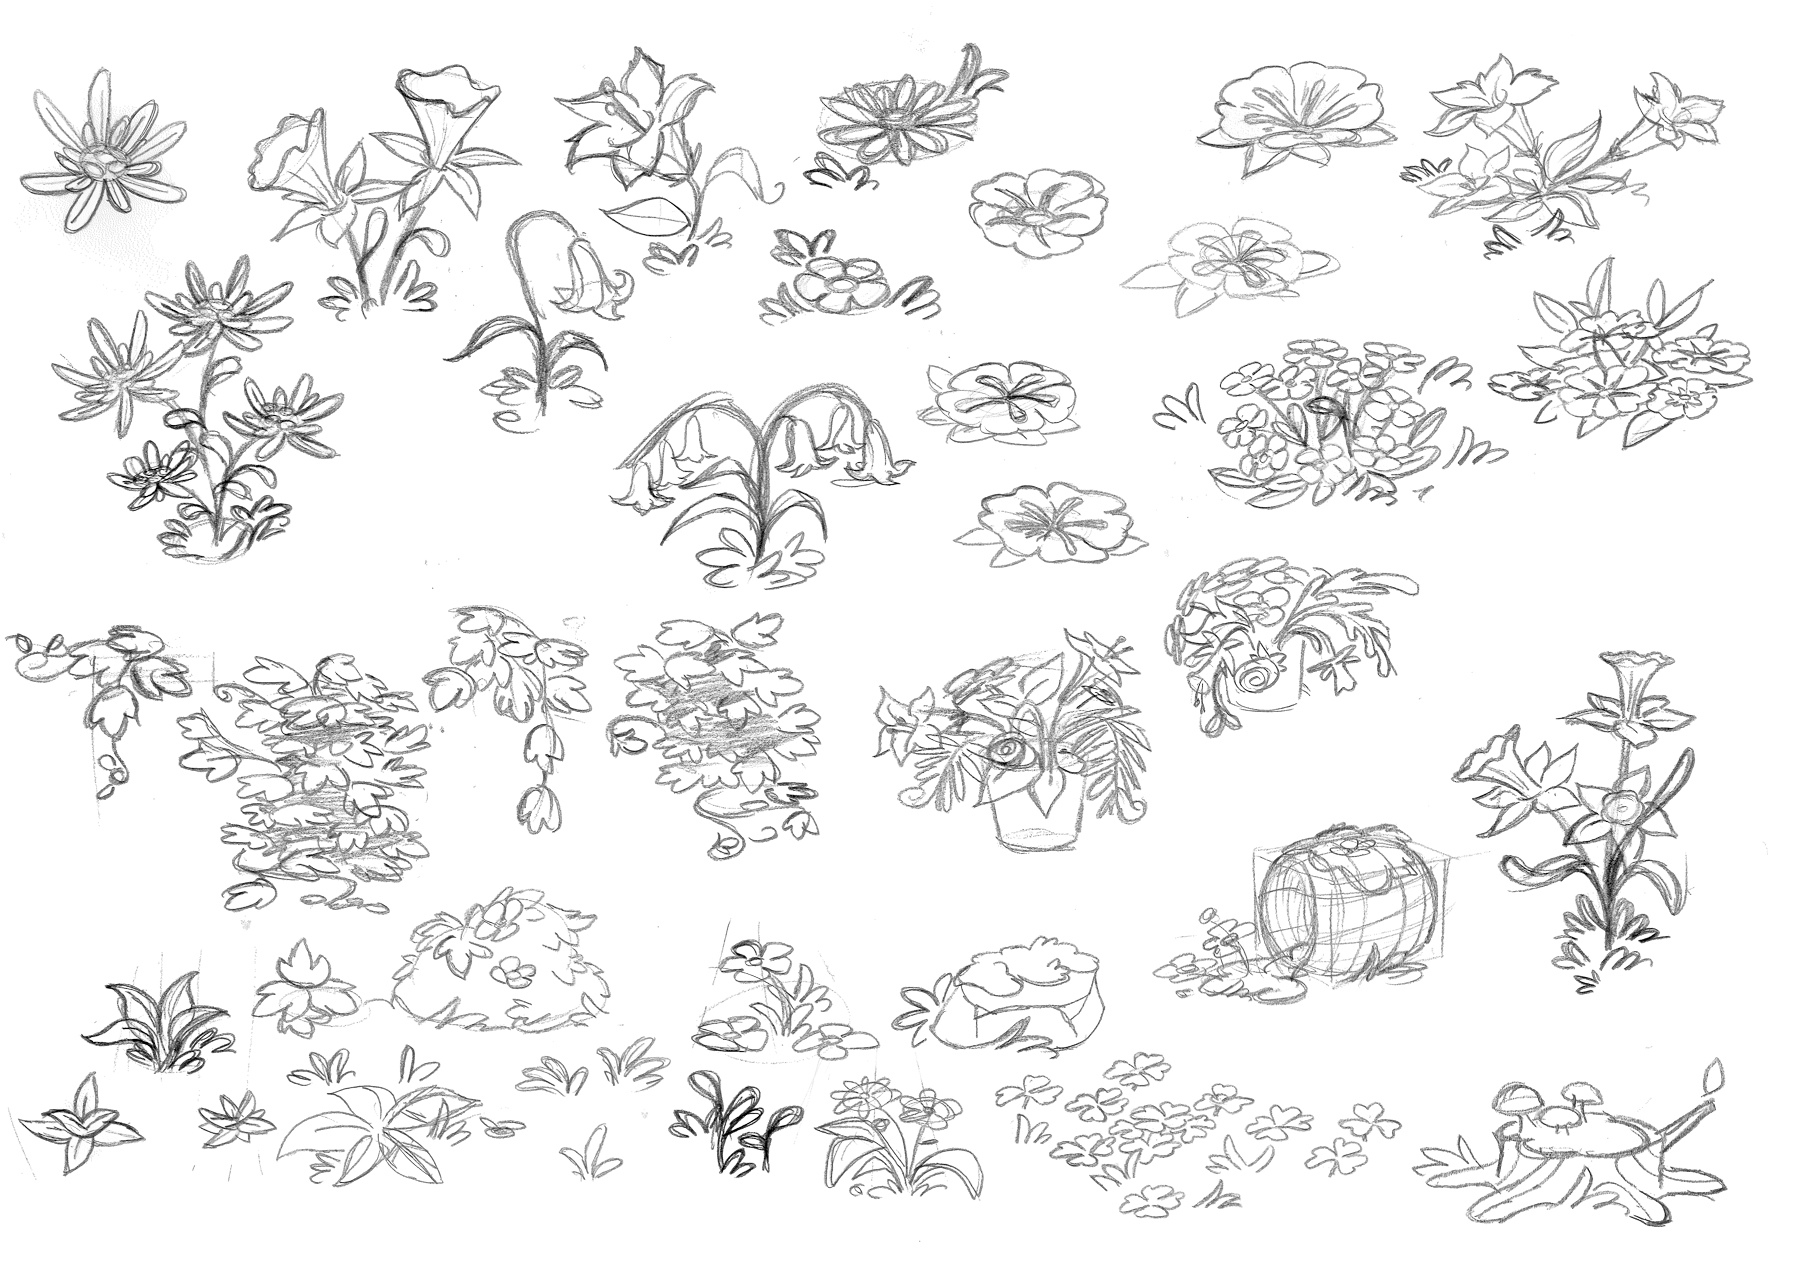 Early sketches of various flowers and other plant life.